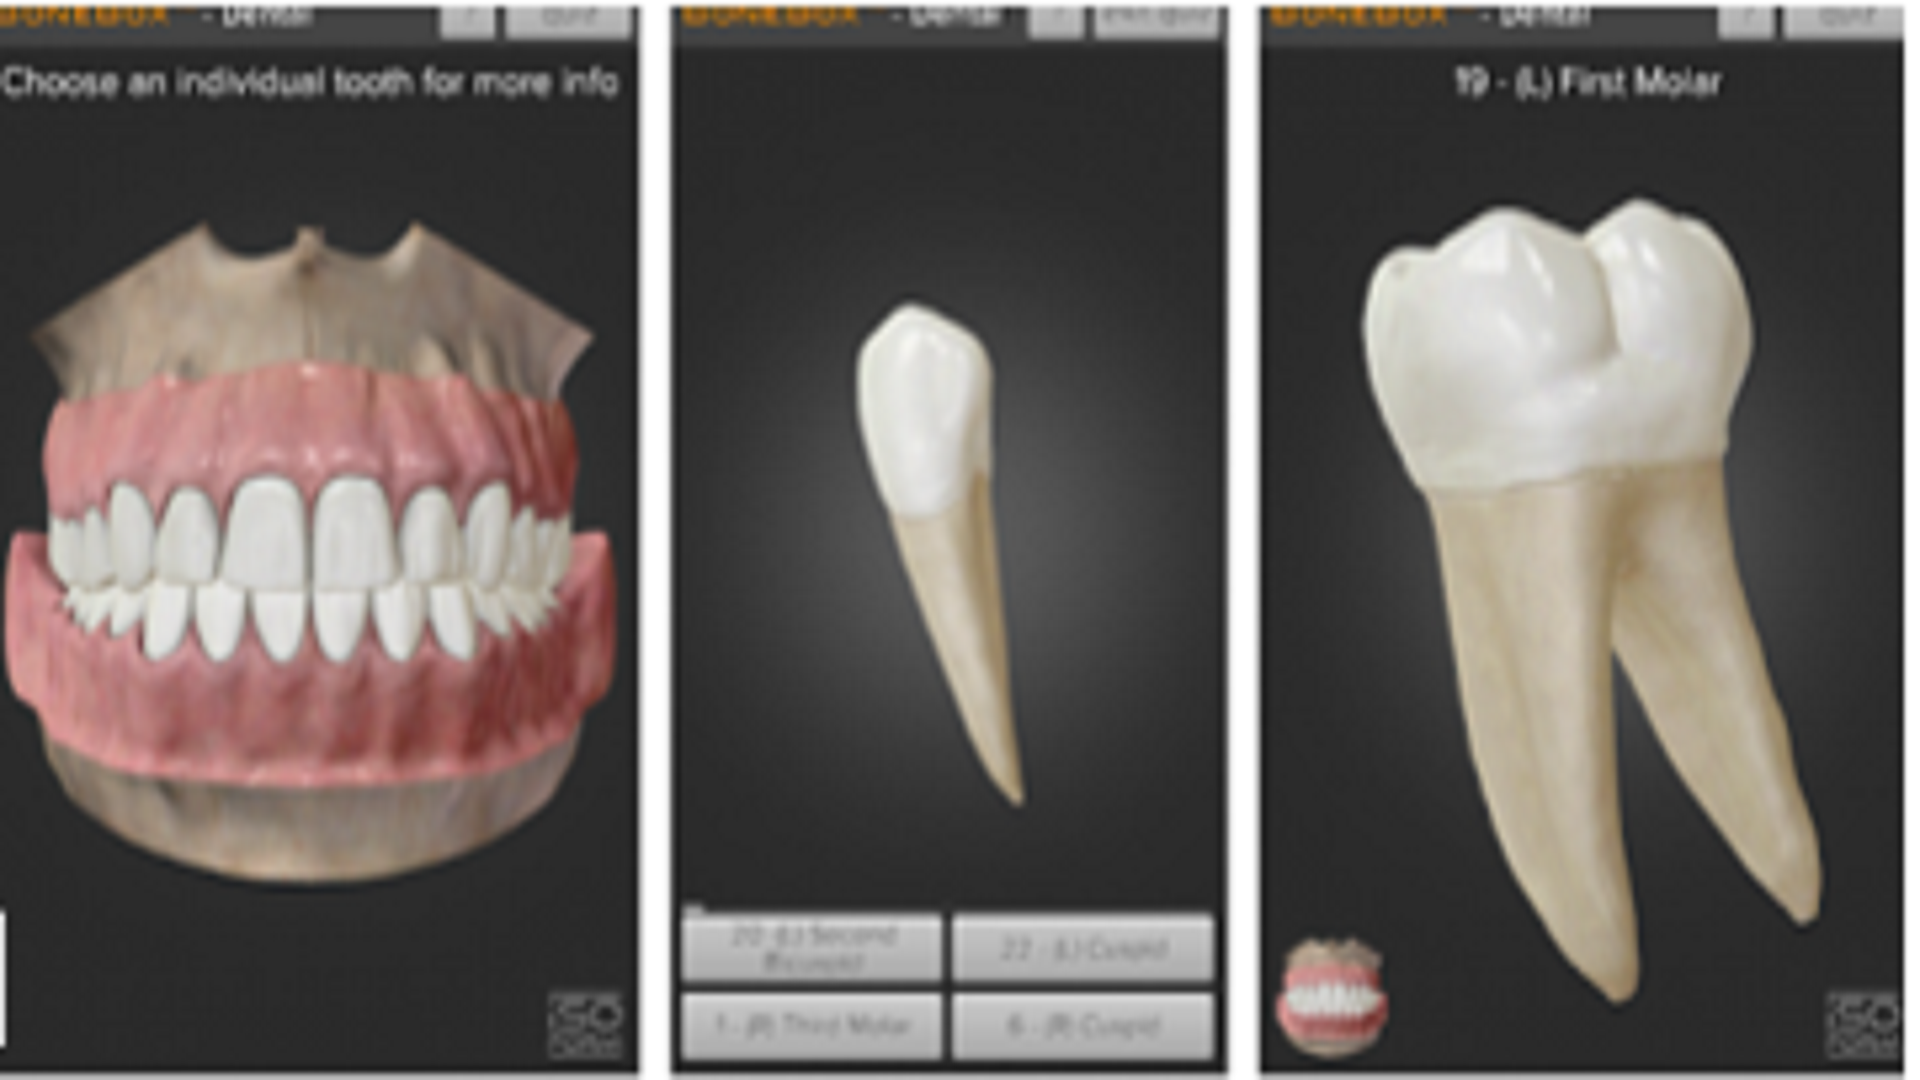 Benefits of New Augmented Reality Technologies in Dental Learning